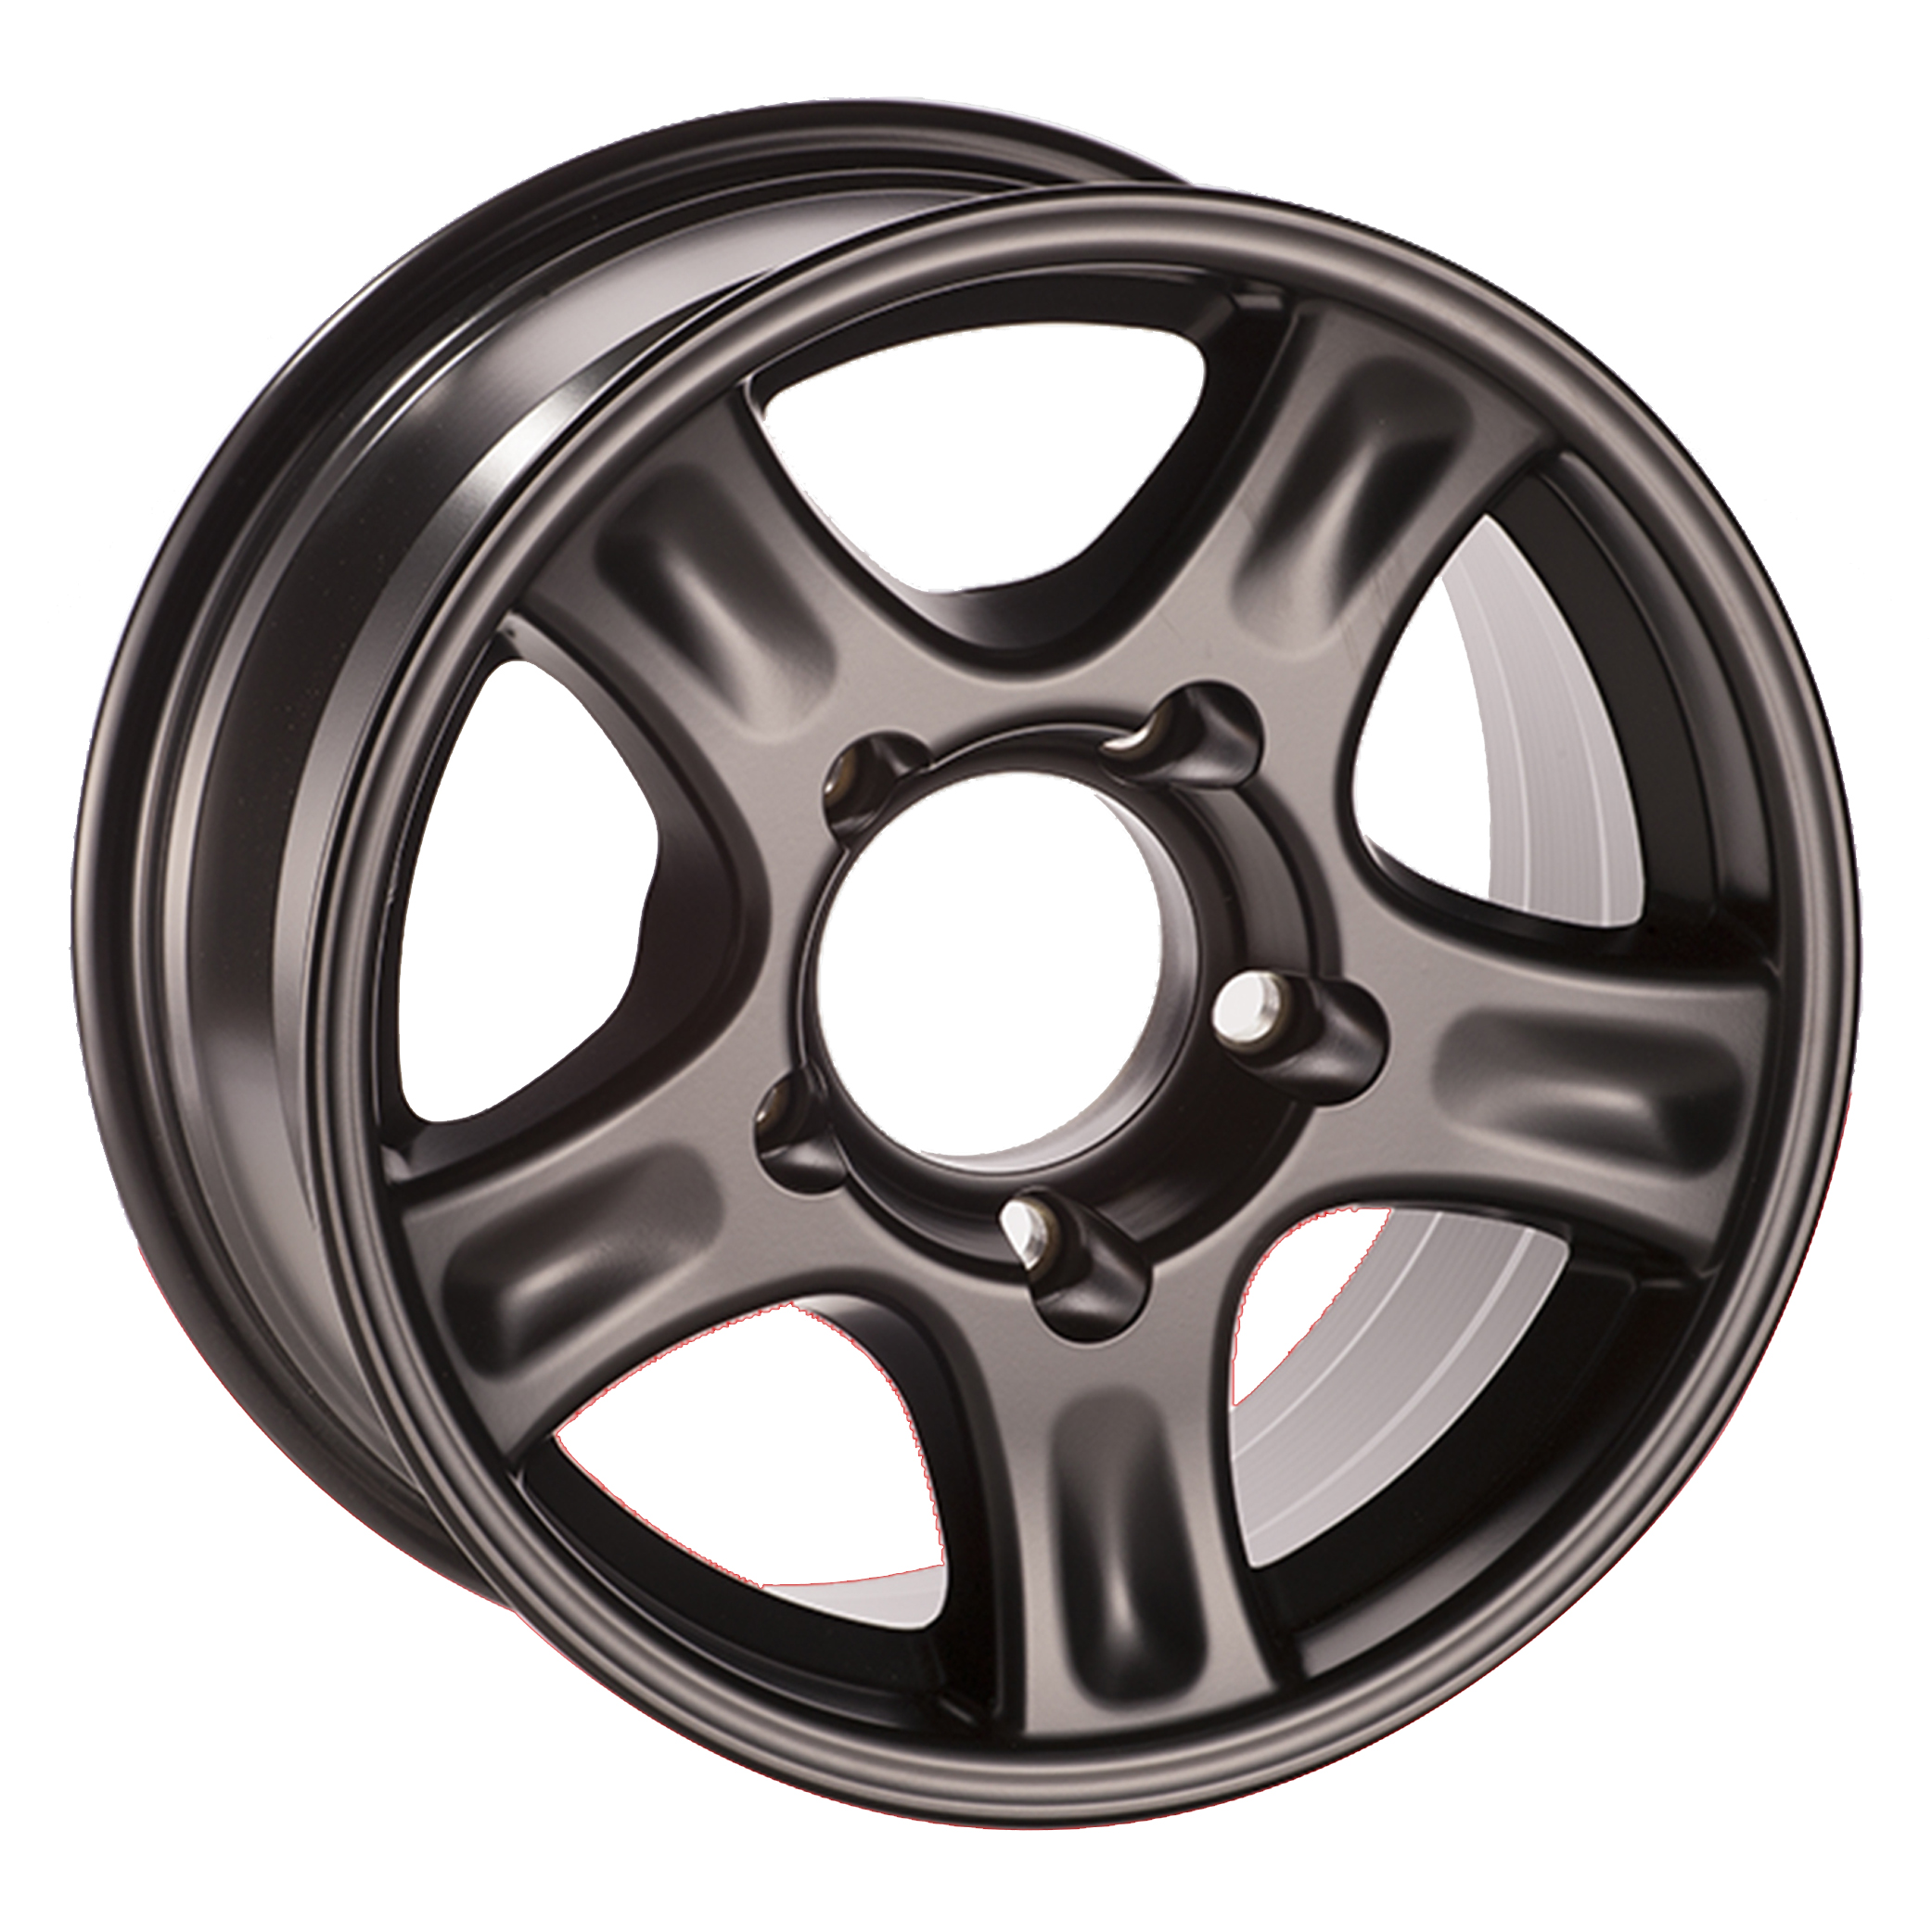 4x4 Alloy Wheels